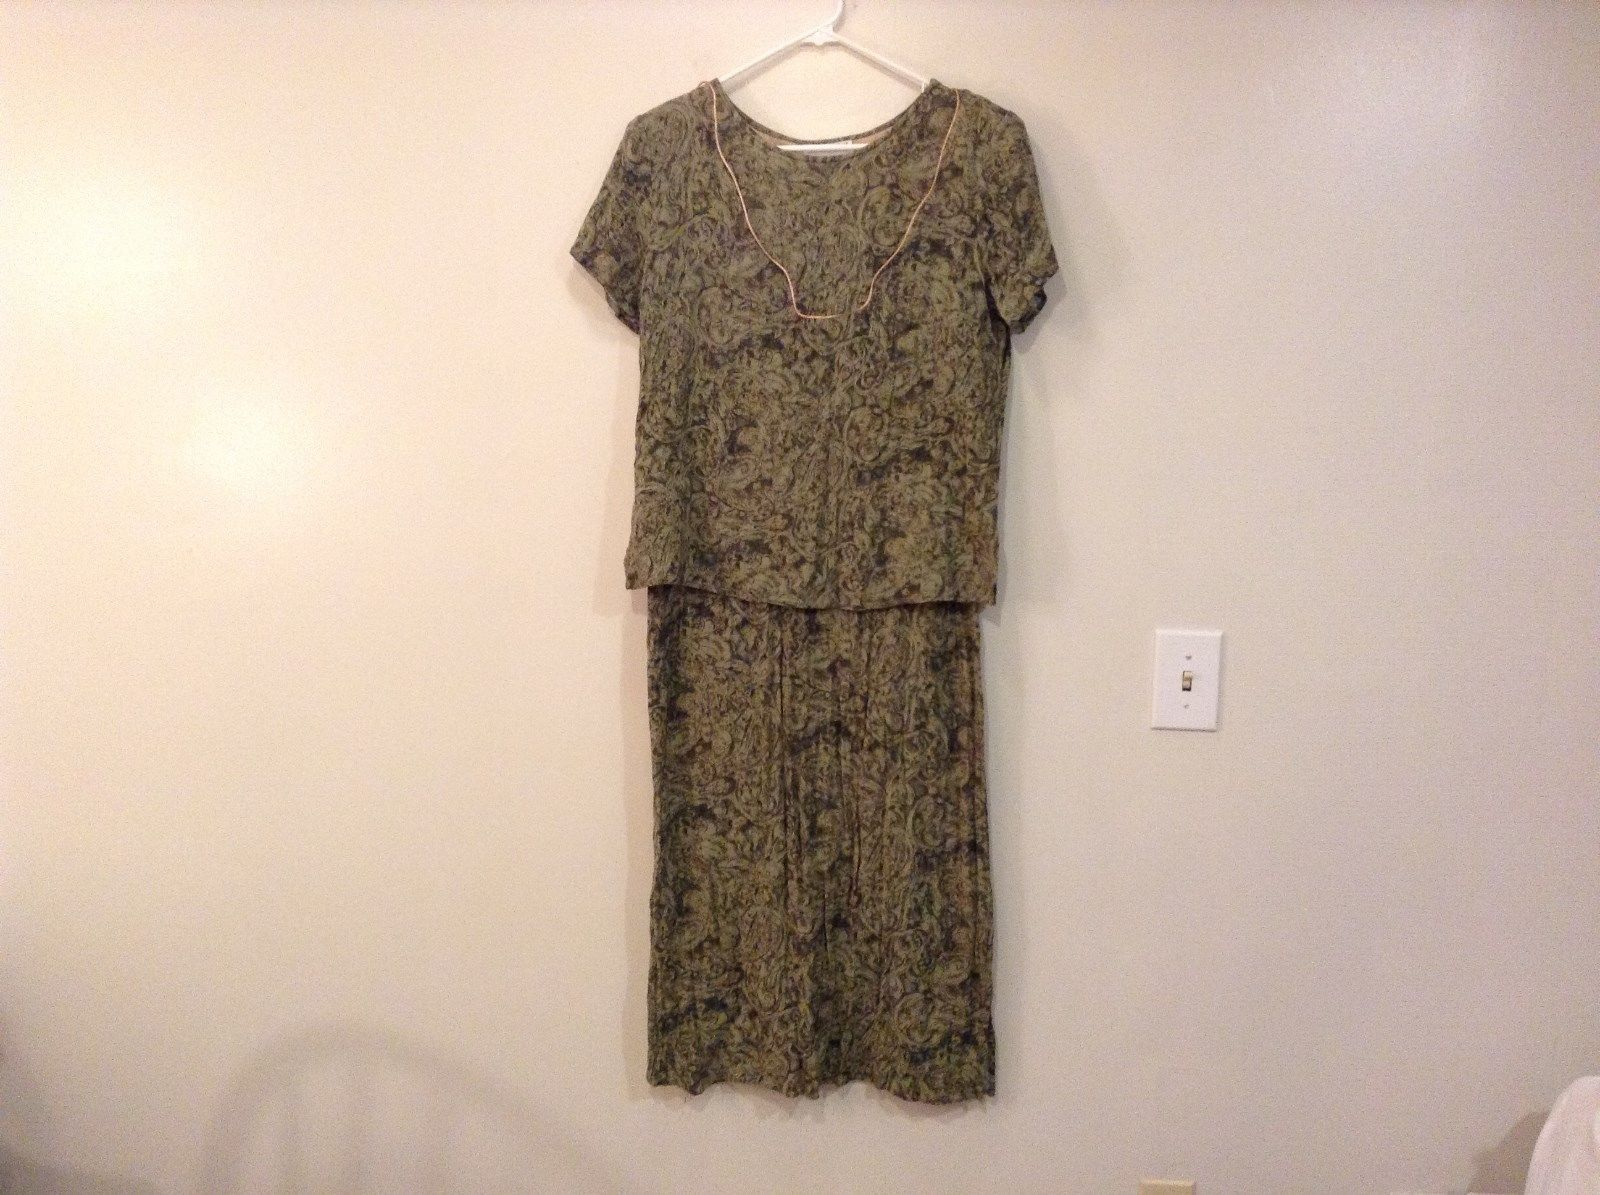 Green with Floral Motif Appropriate Behavior Dress No Size Measurements Below